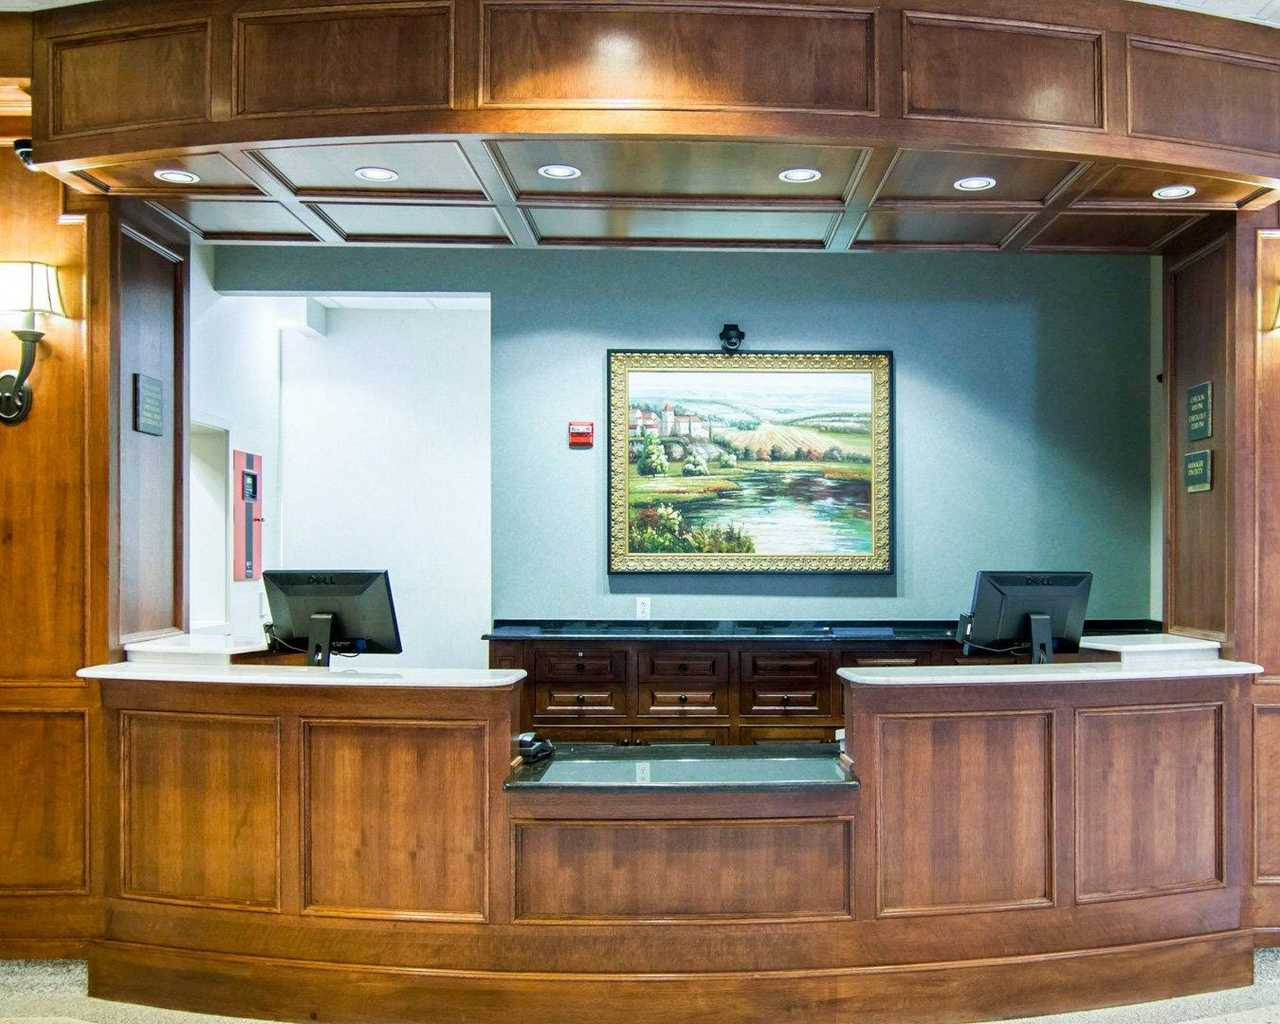 https://www.hotelsbyday.com/_data/default-hotel_image/1/9598/lobbyinterior1.jpg